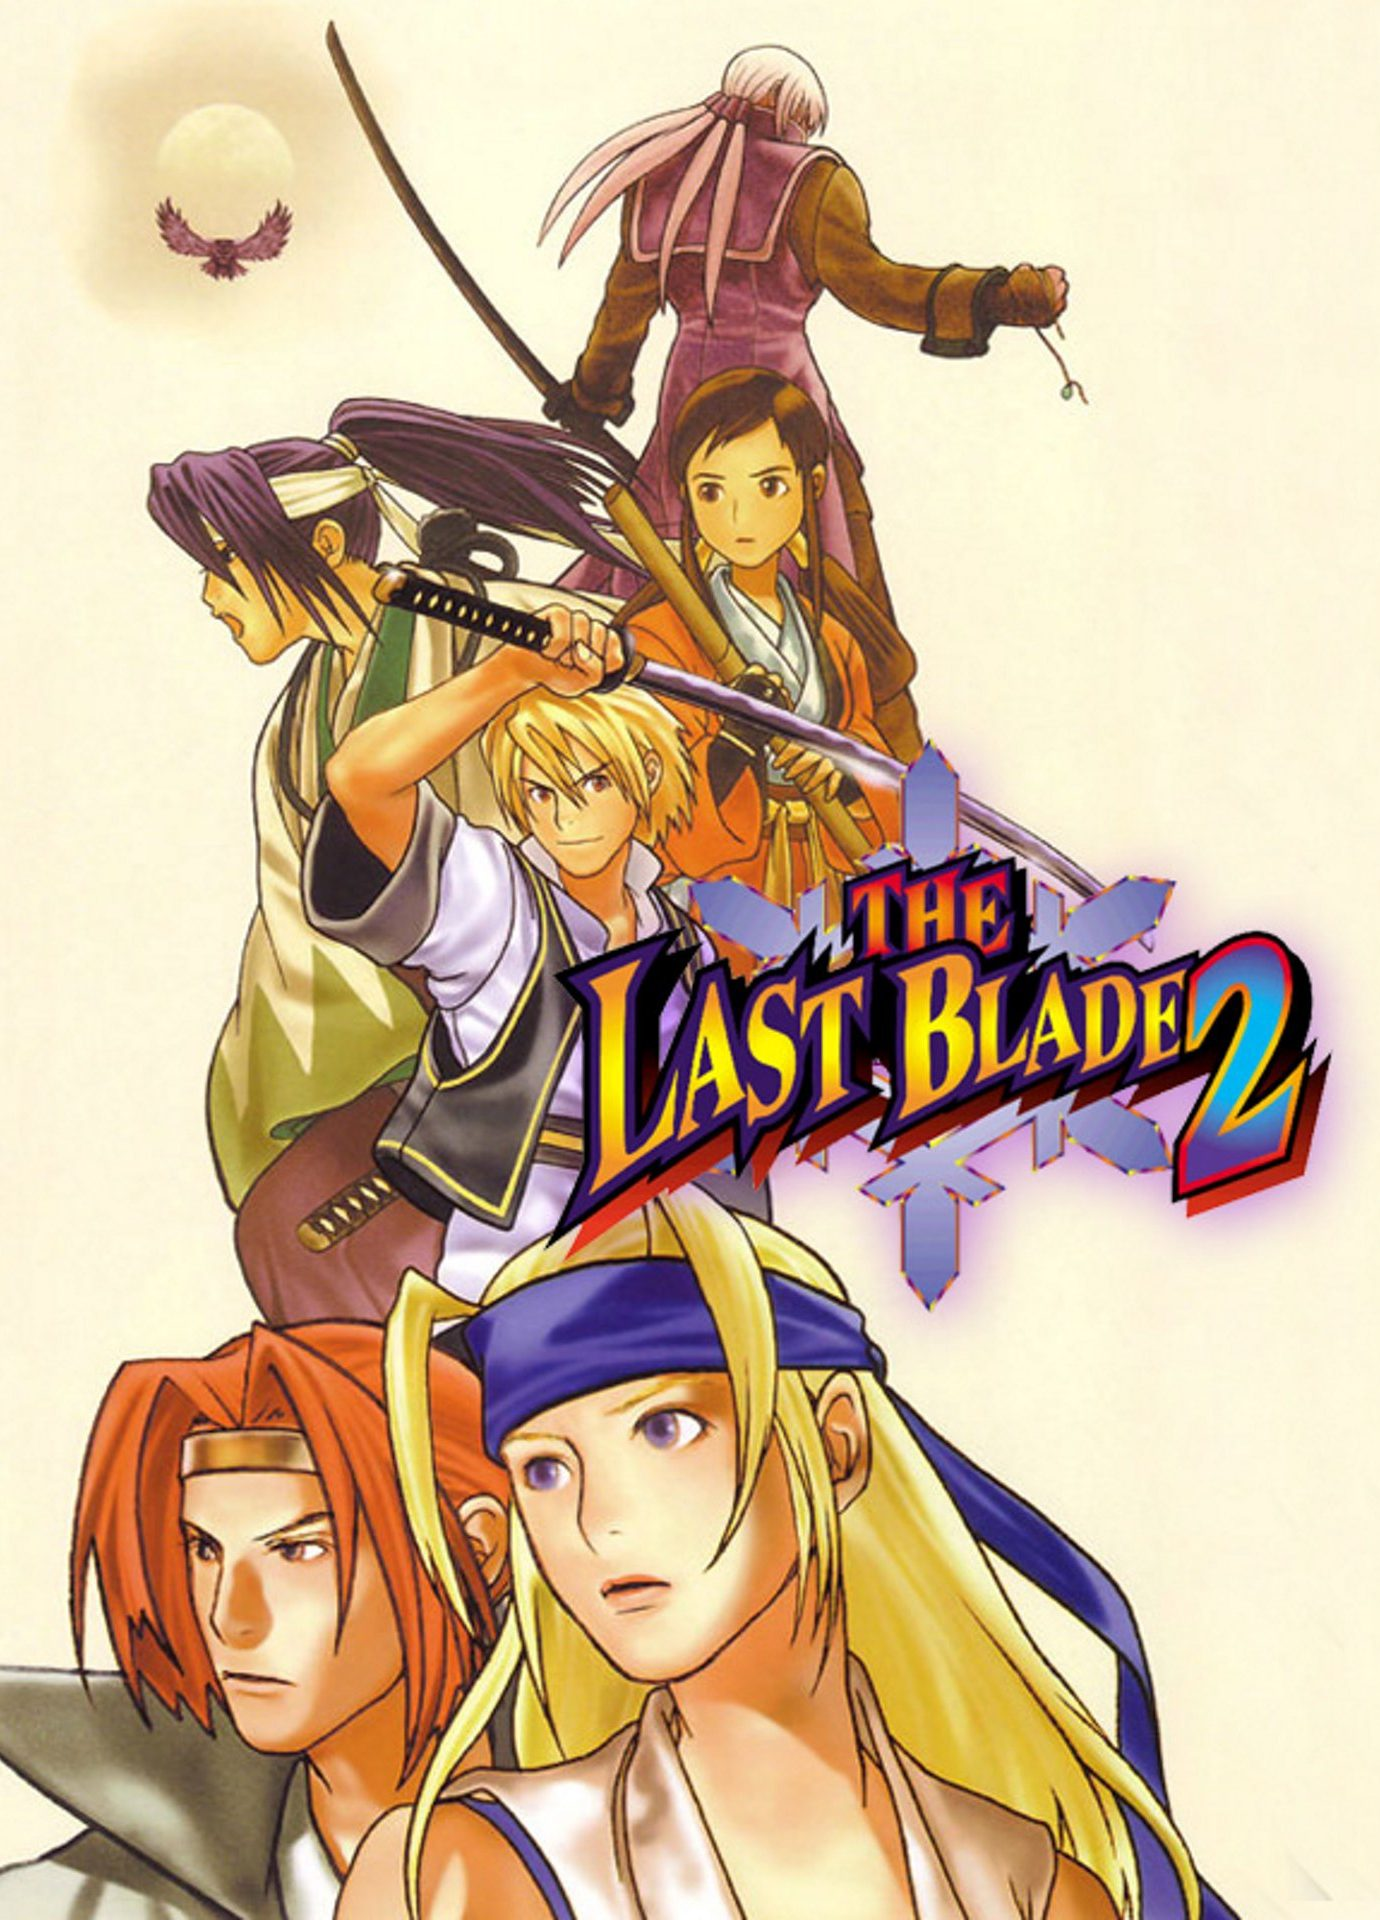 game-steam-the-last-blade-2-cover-3834537